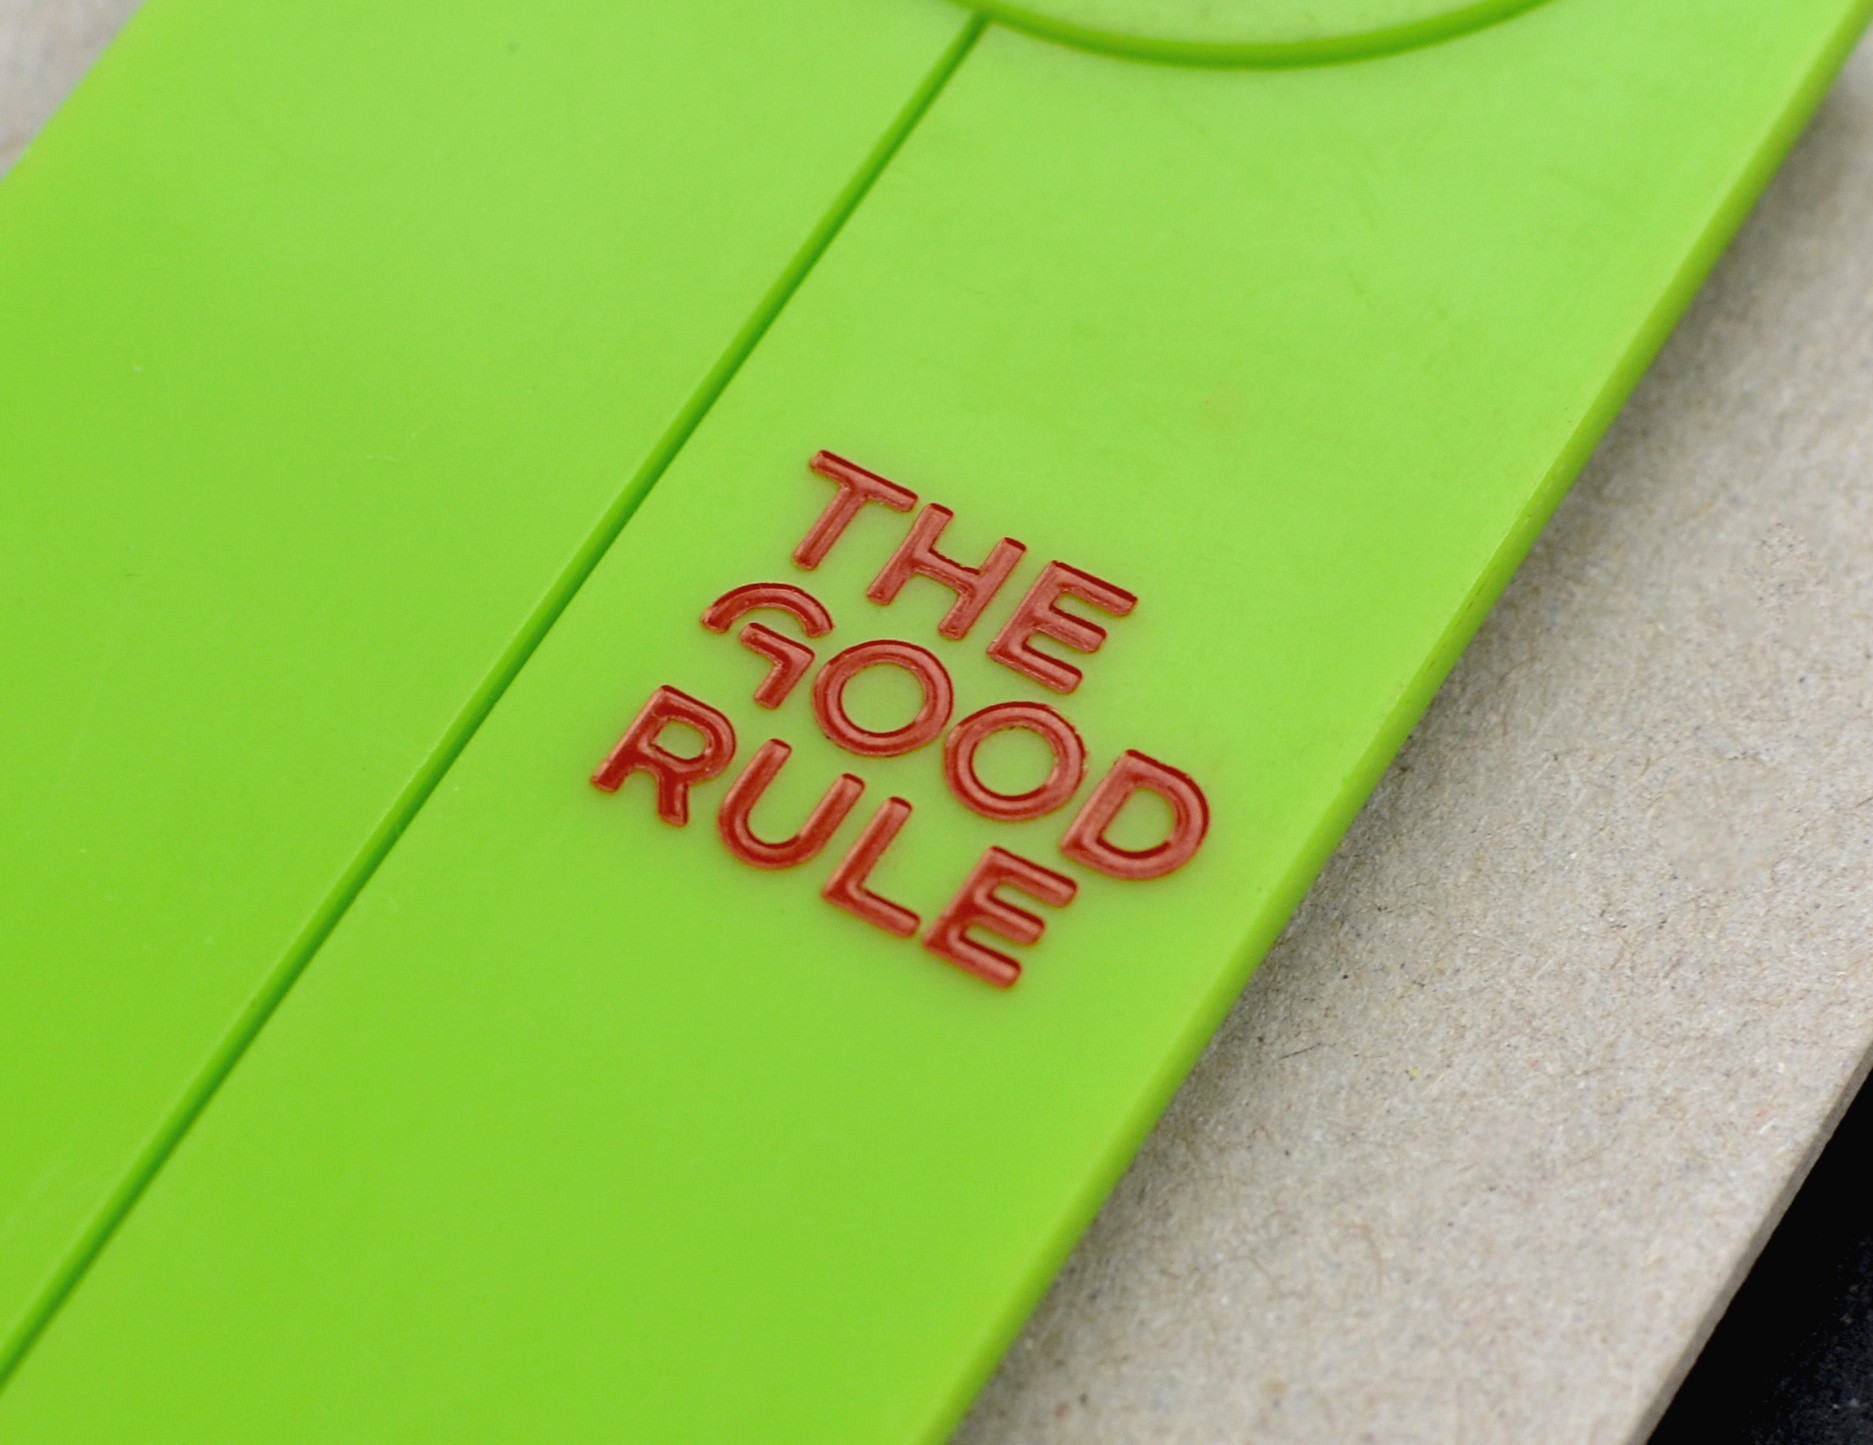 MAYK The Good Rule Branding and Packaging